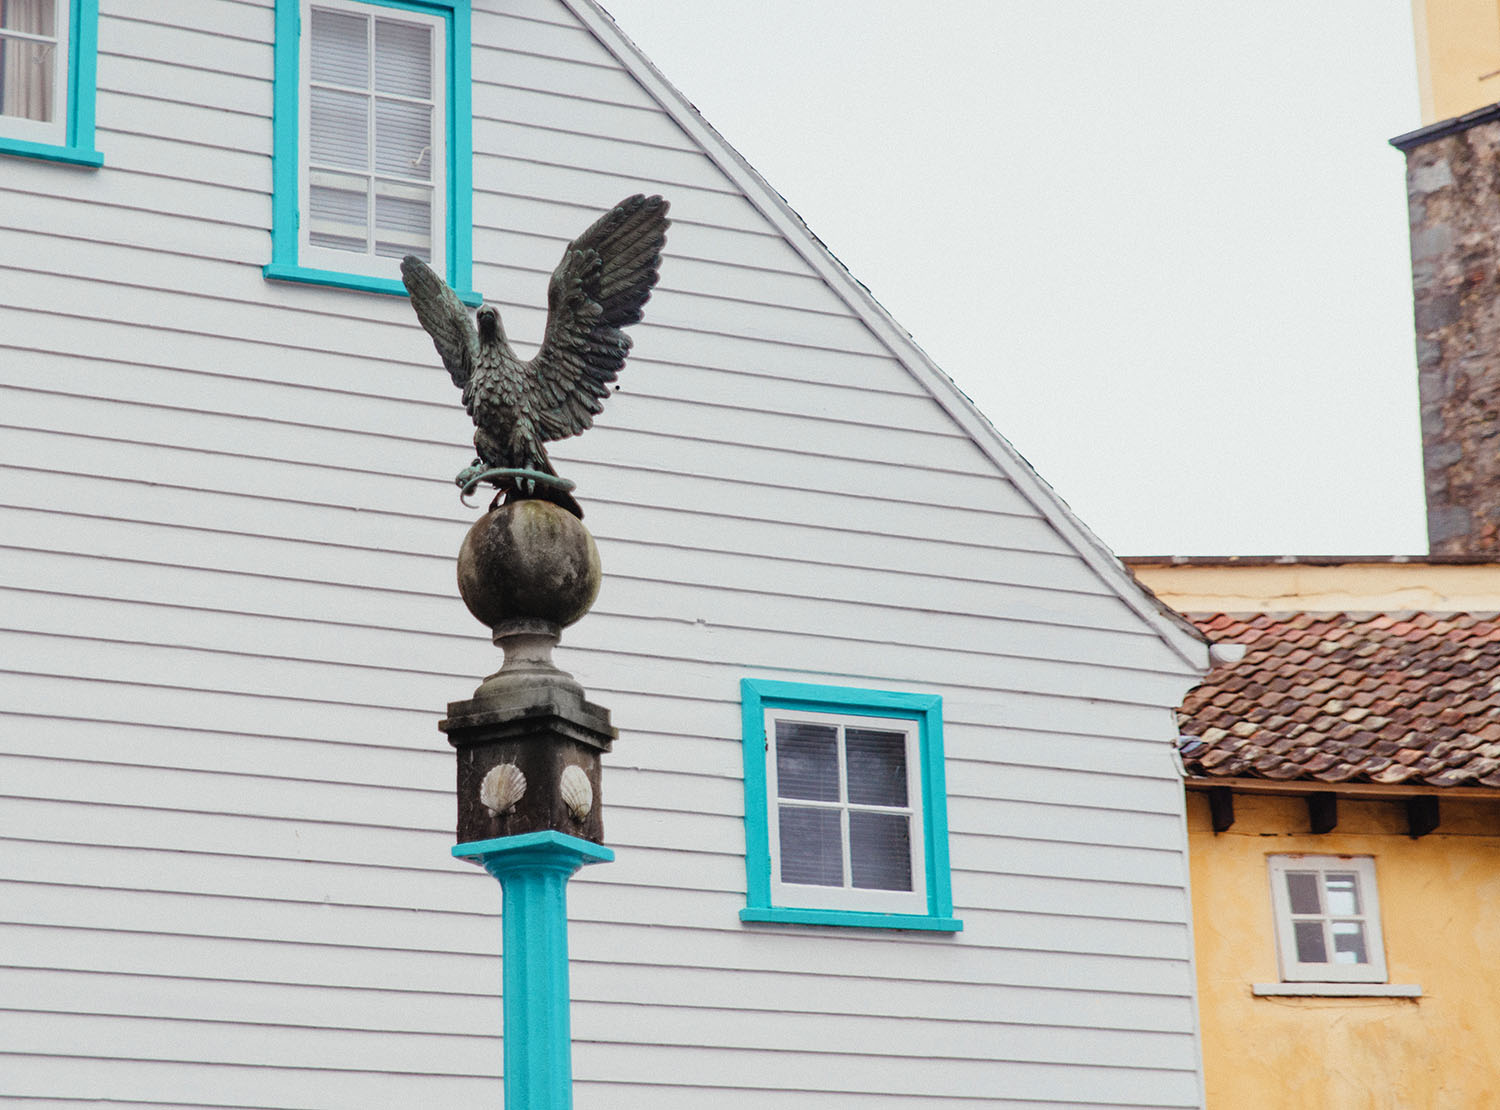 Bird Statue in the picturesque village of Portmeirion in North Wales